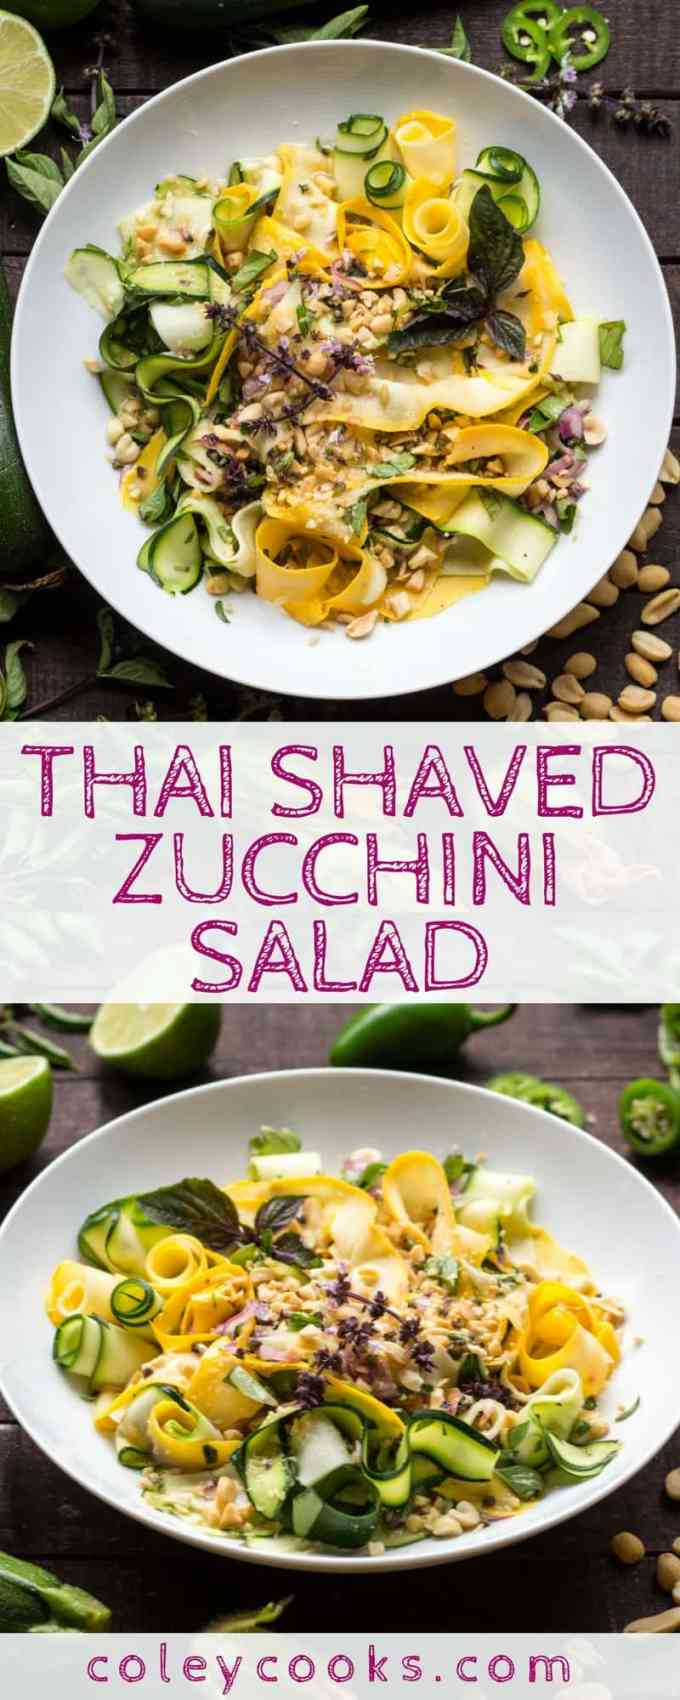 THAI SHAVED ZUCCHINI SALAD | Easy summer salad recipe bursting with flavor! Raw zucchini ribbons tossed in a light Thai vinaigrette, finished with Thai basil and crunchy peanuts! #recipe #salad #raw #plantbased #zucchini | ColeyCooks.com